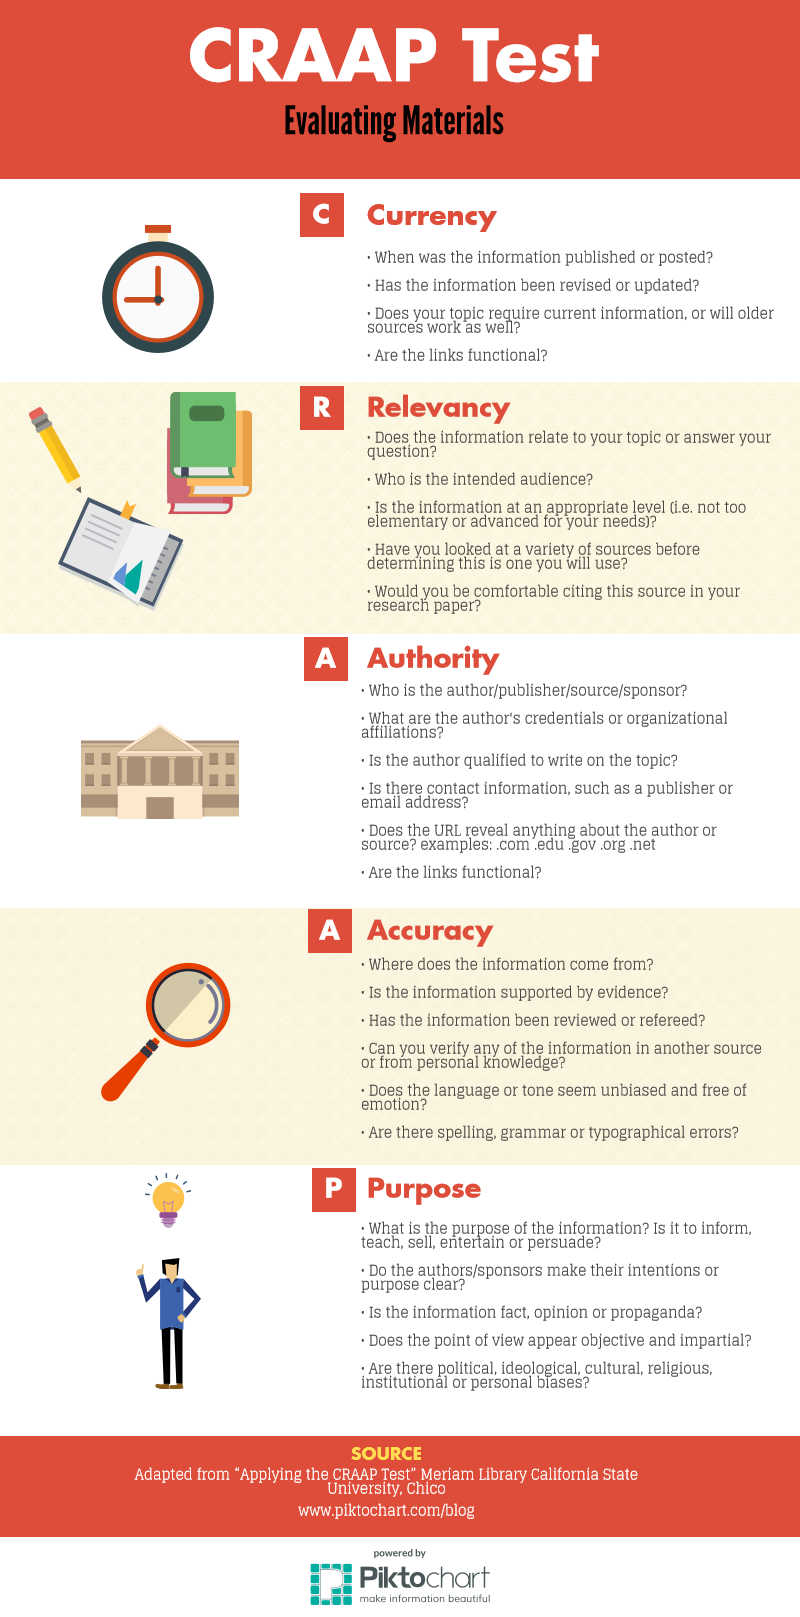 Infographoc for the Craap test for evaluating materials: Currency, Relevancy, Authority, Accuracy, Purpose